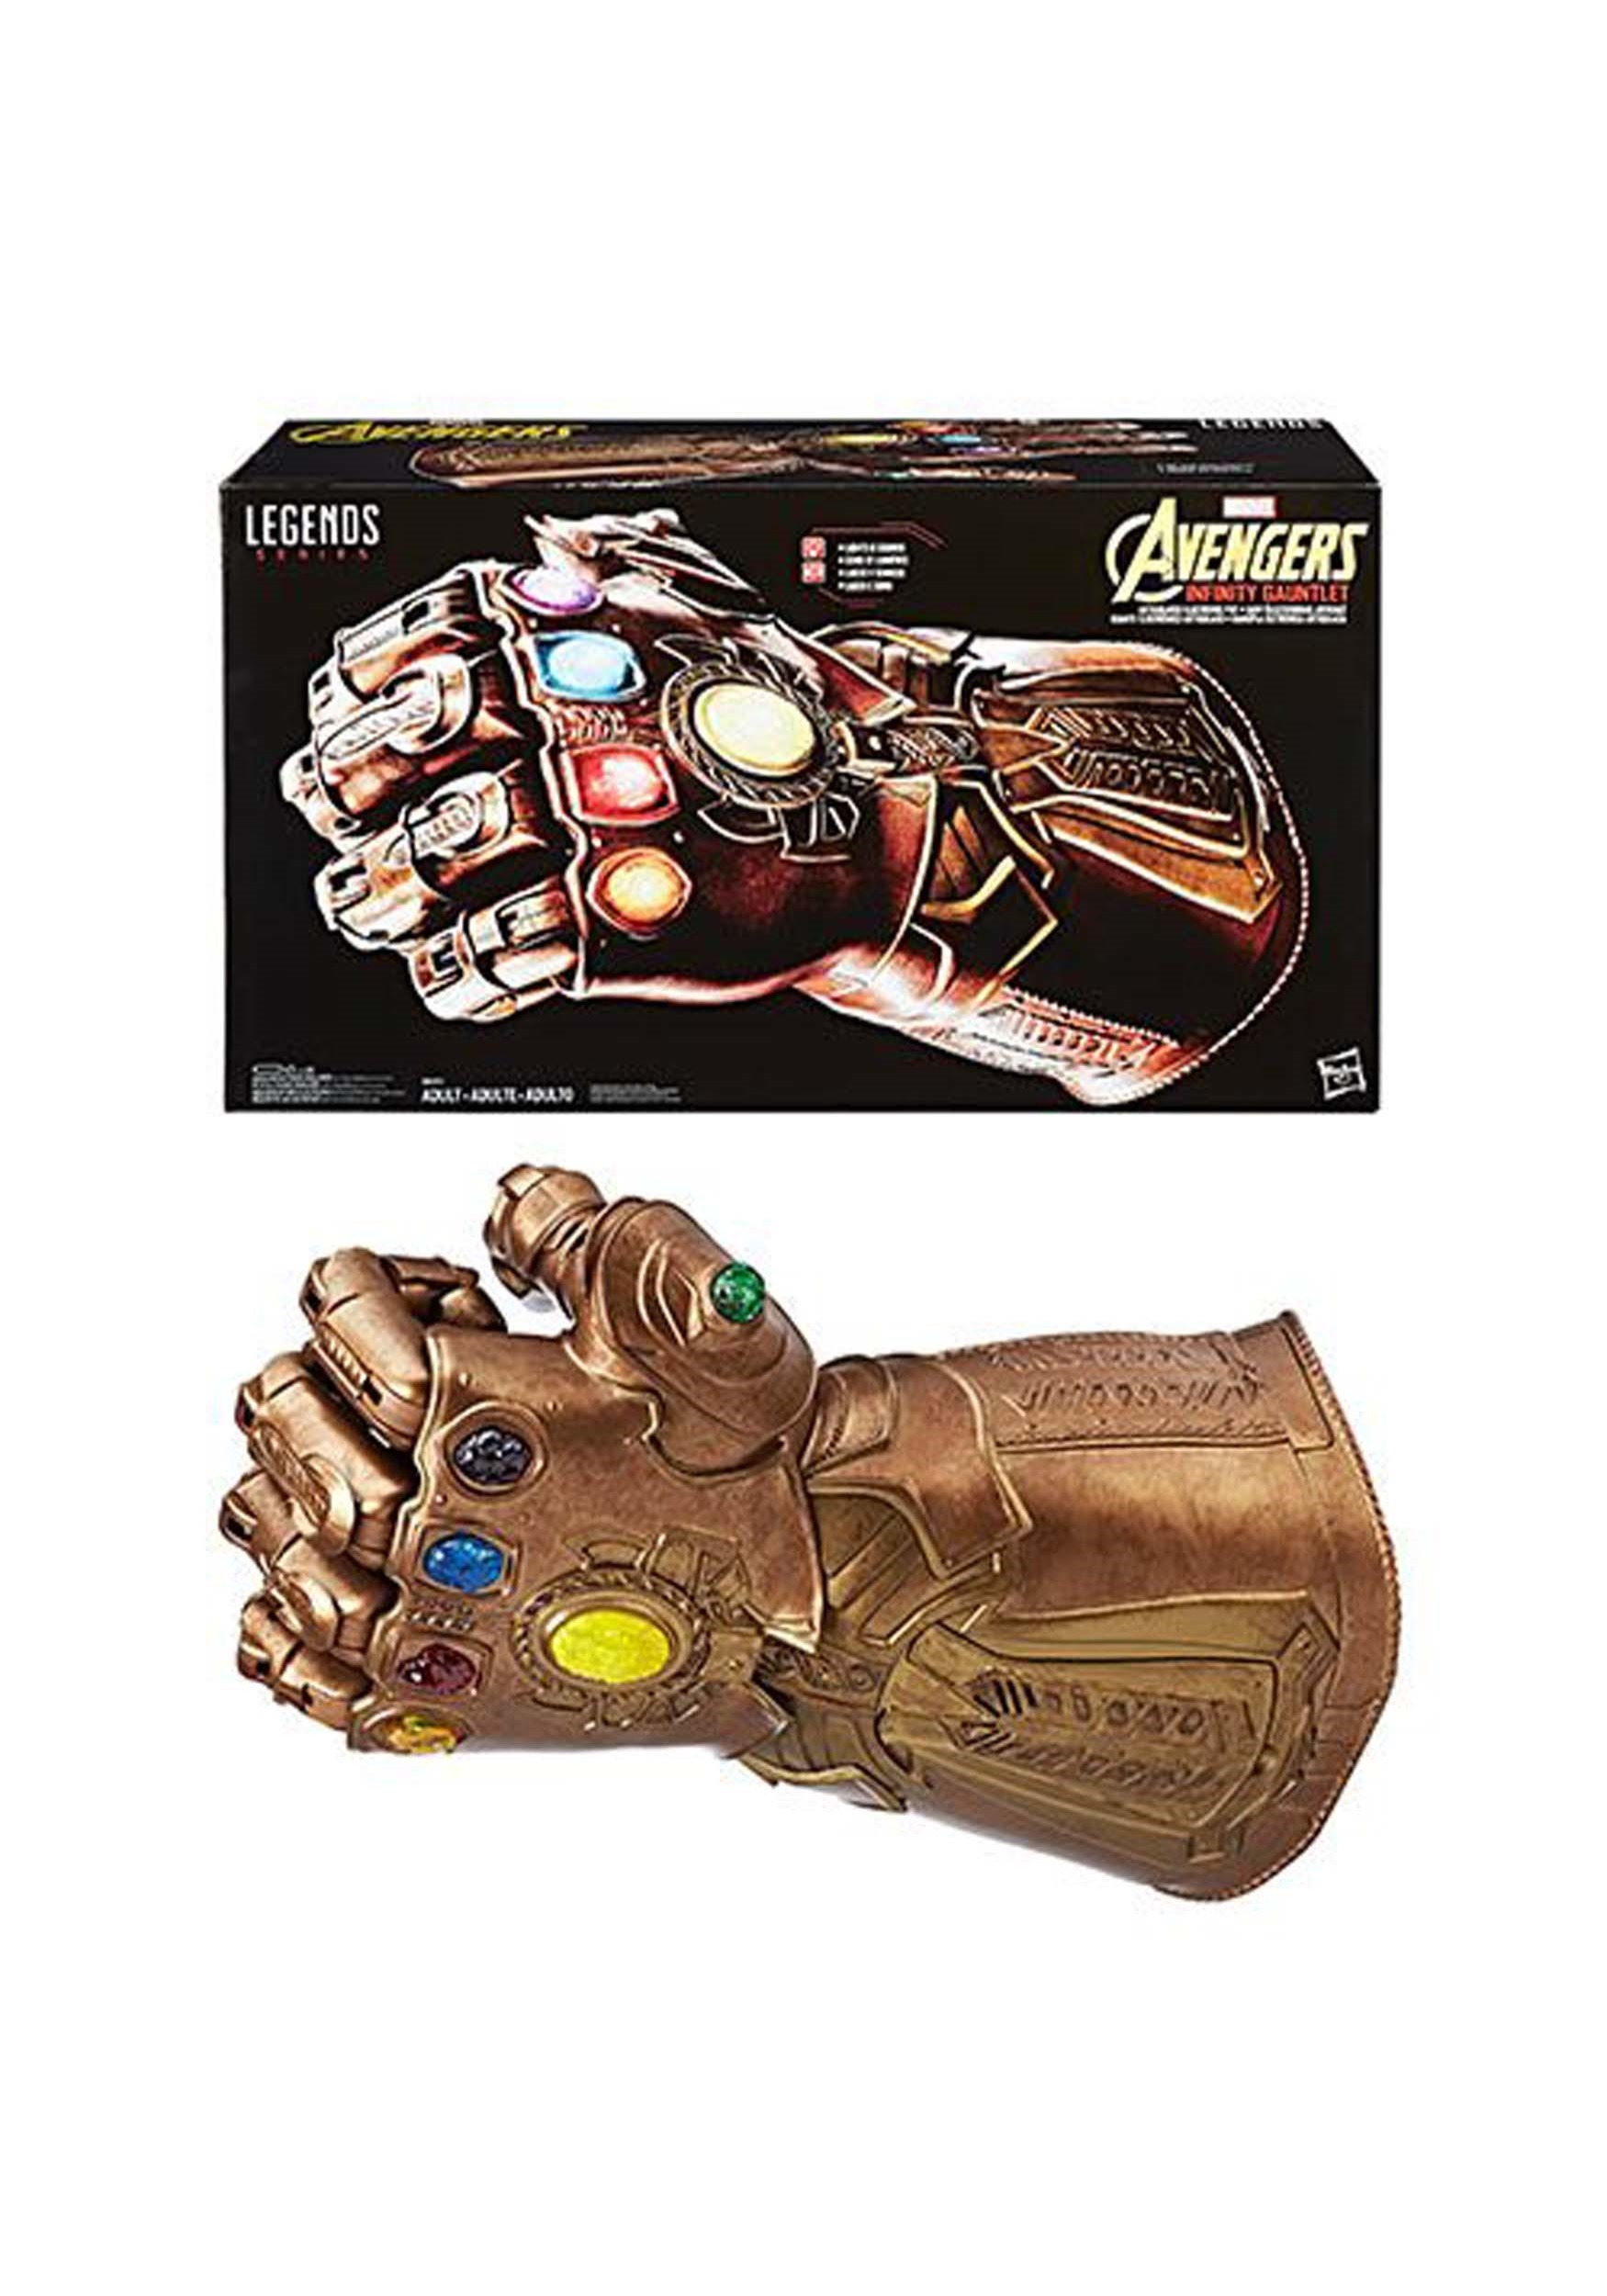 INOpets.com Anything for Pets Parents & Their Pets Marvel Legends Thanos Infinity Gauntlet Avengers Infinity Wars